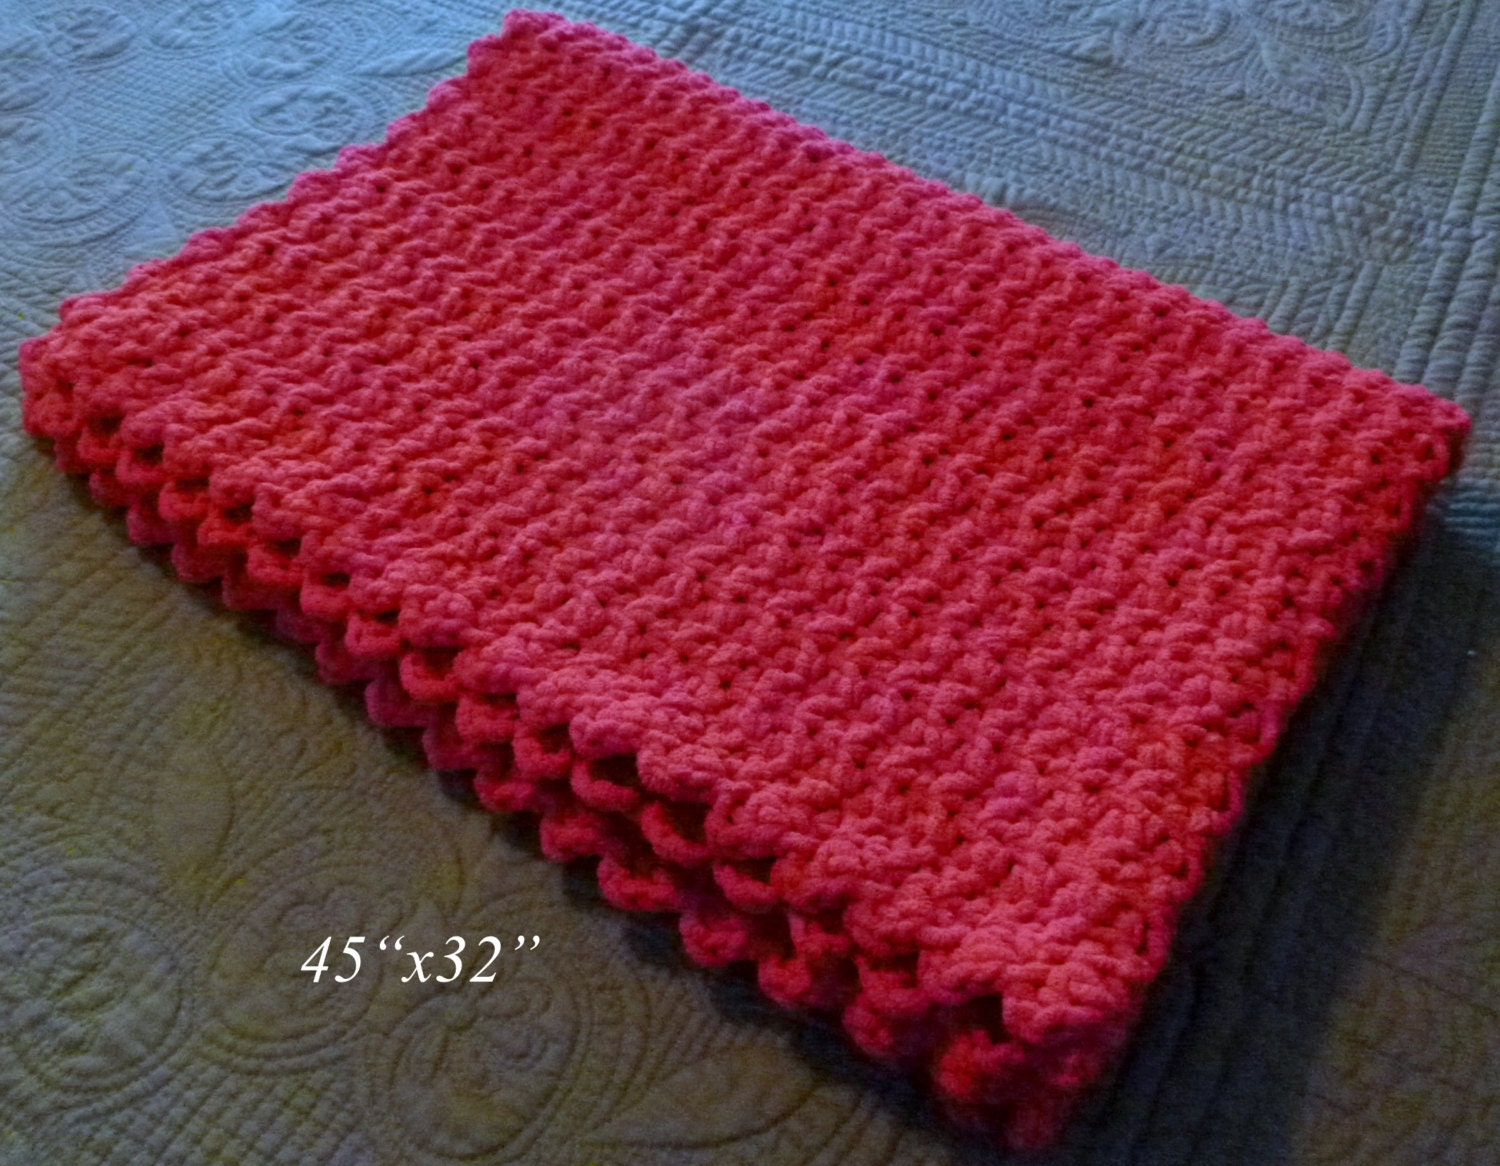 Crochet Patterns Super Bulky Yarn : Handmade Crochet Baby Blanket Super Bulky Baby Blanket by berly731